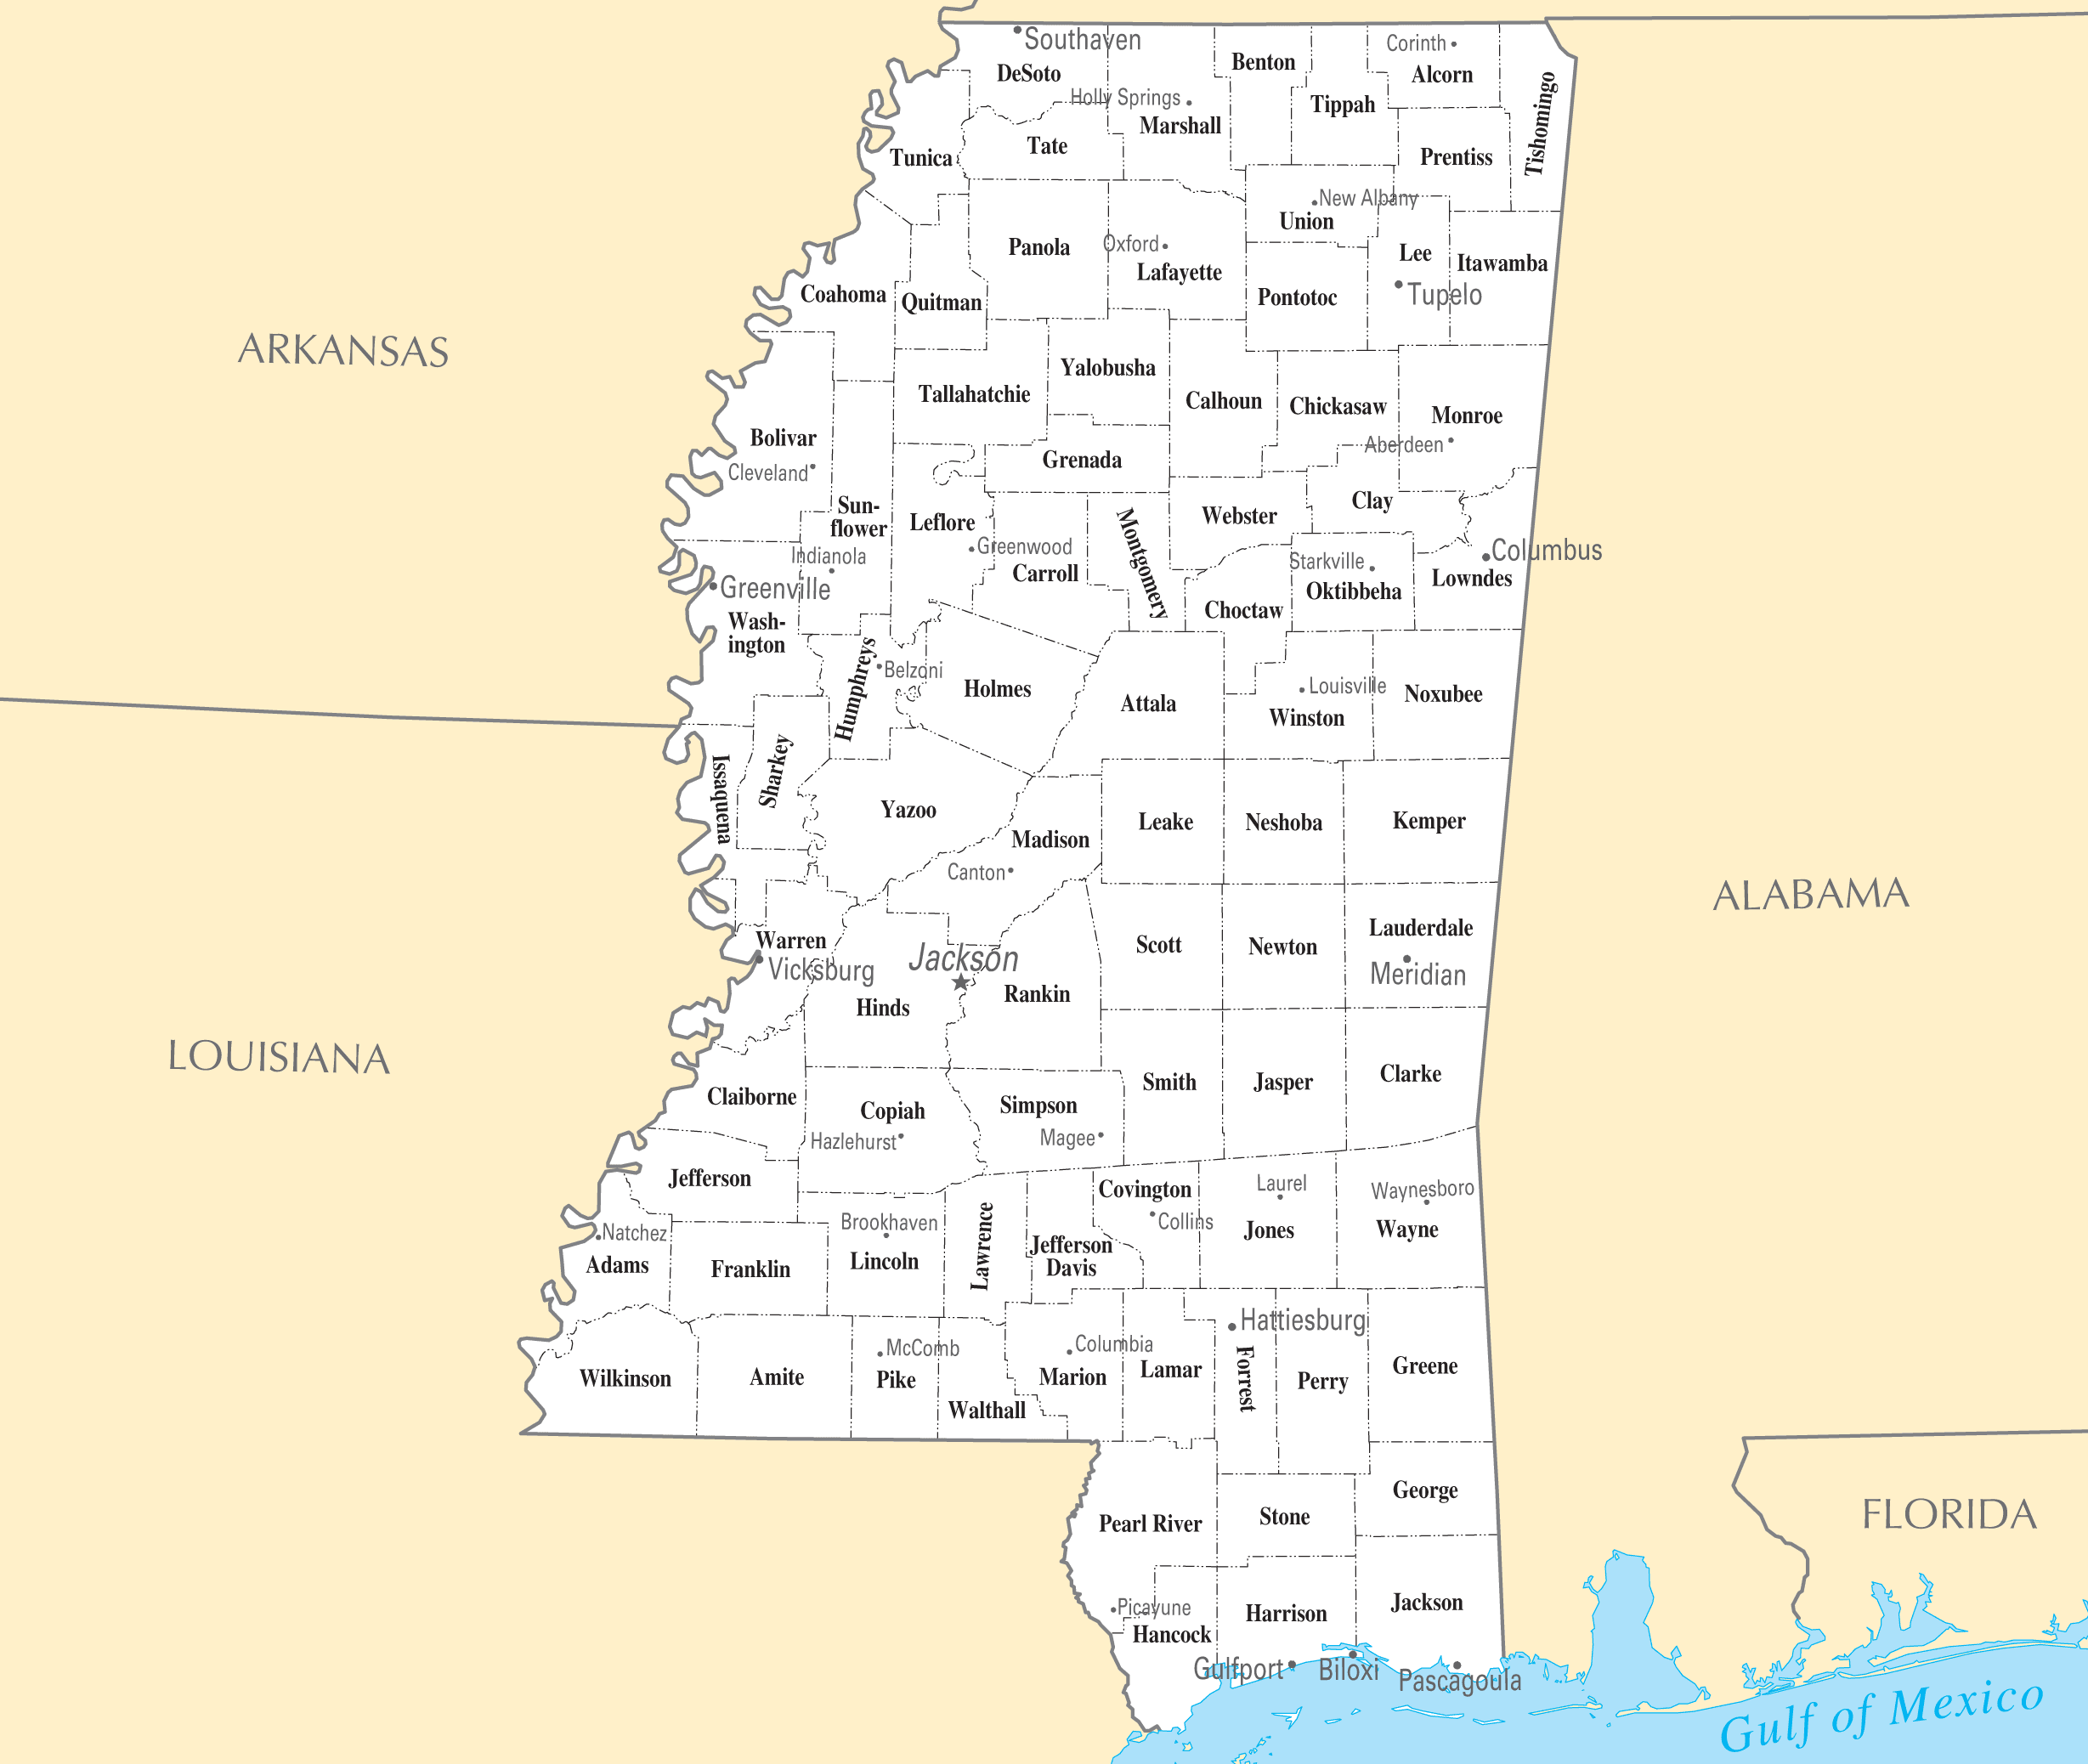 Map Of Mississippi Cities Mississippi Cities And Towns • Mapsof.net